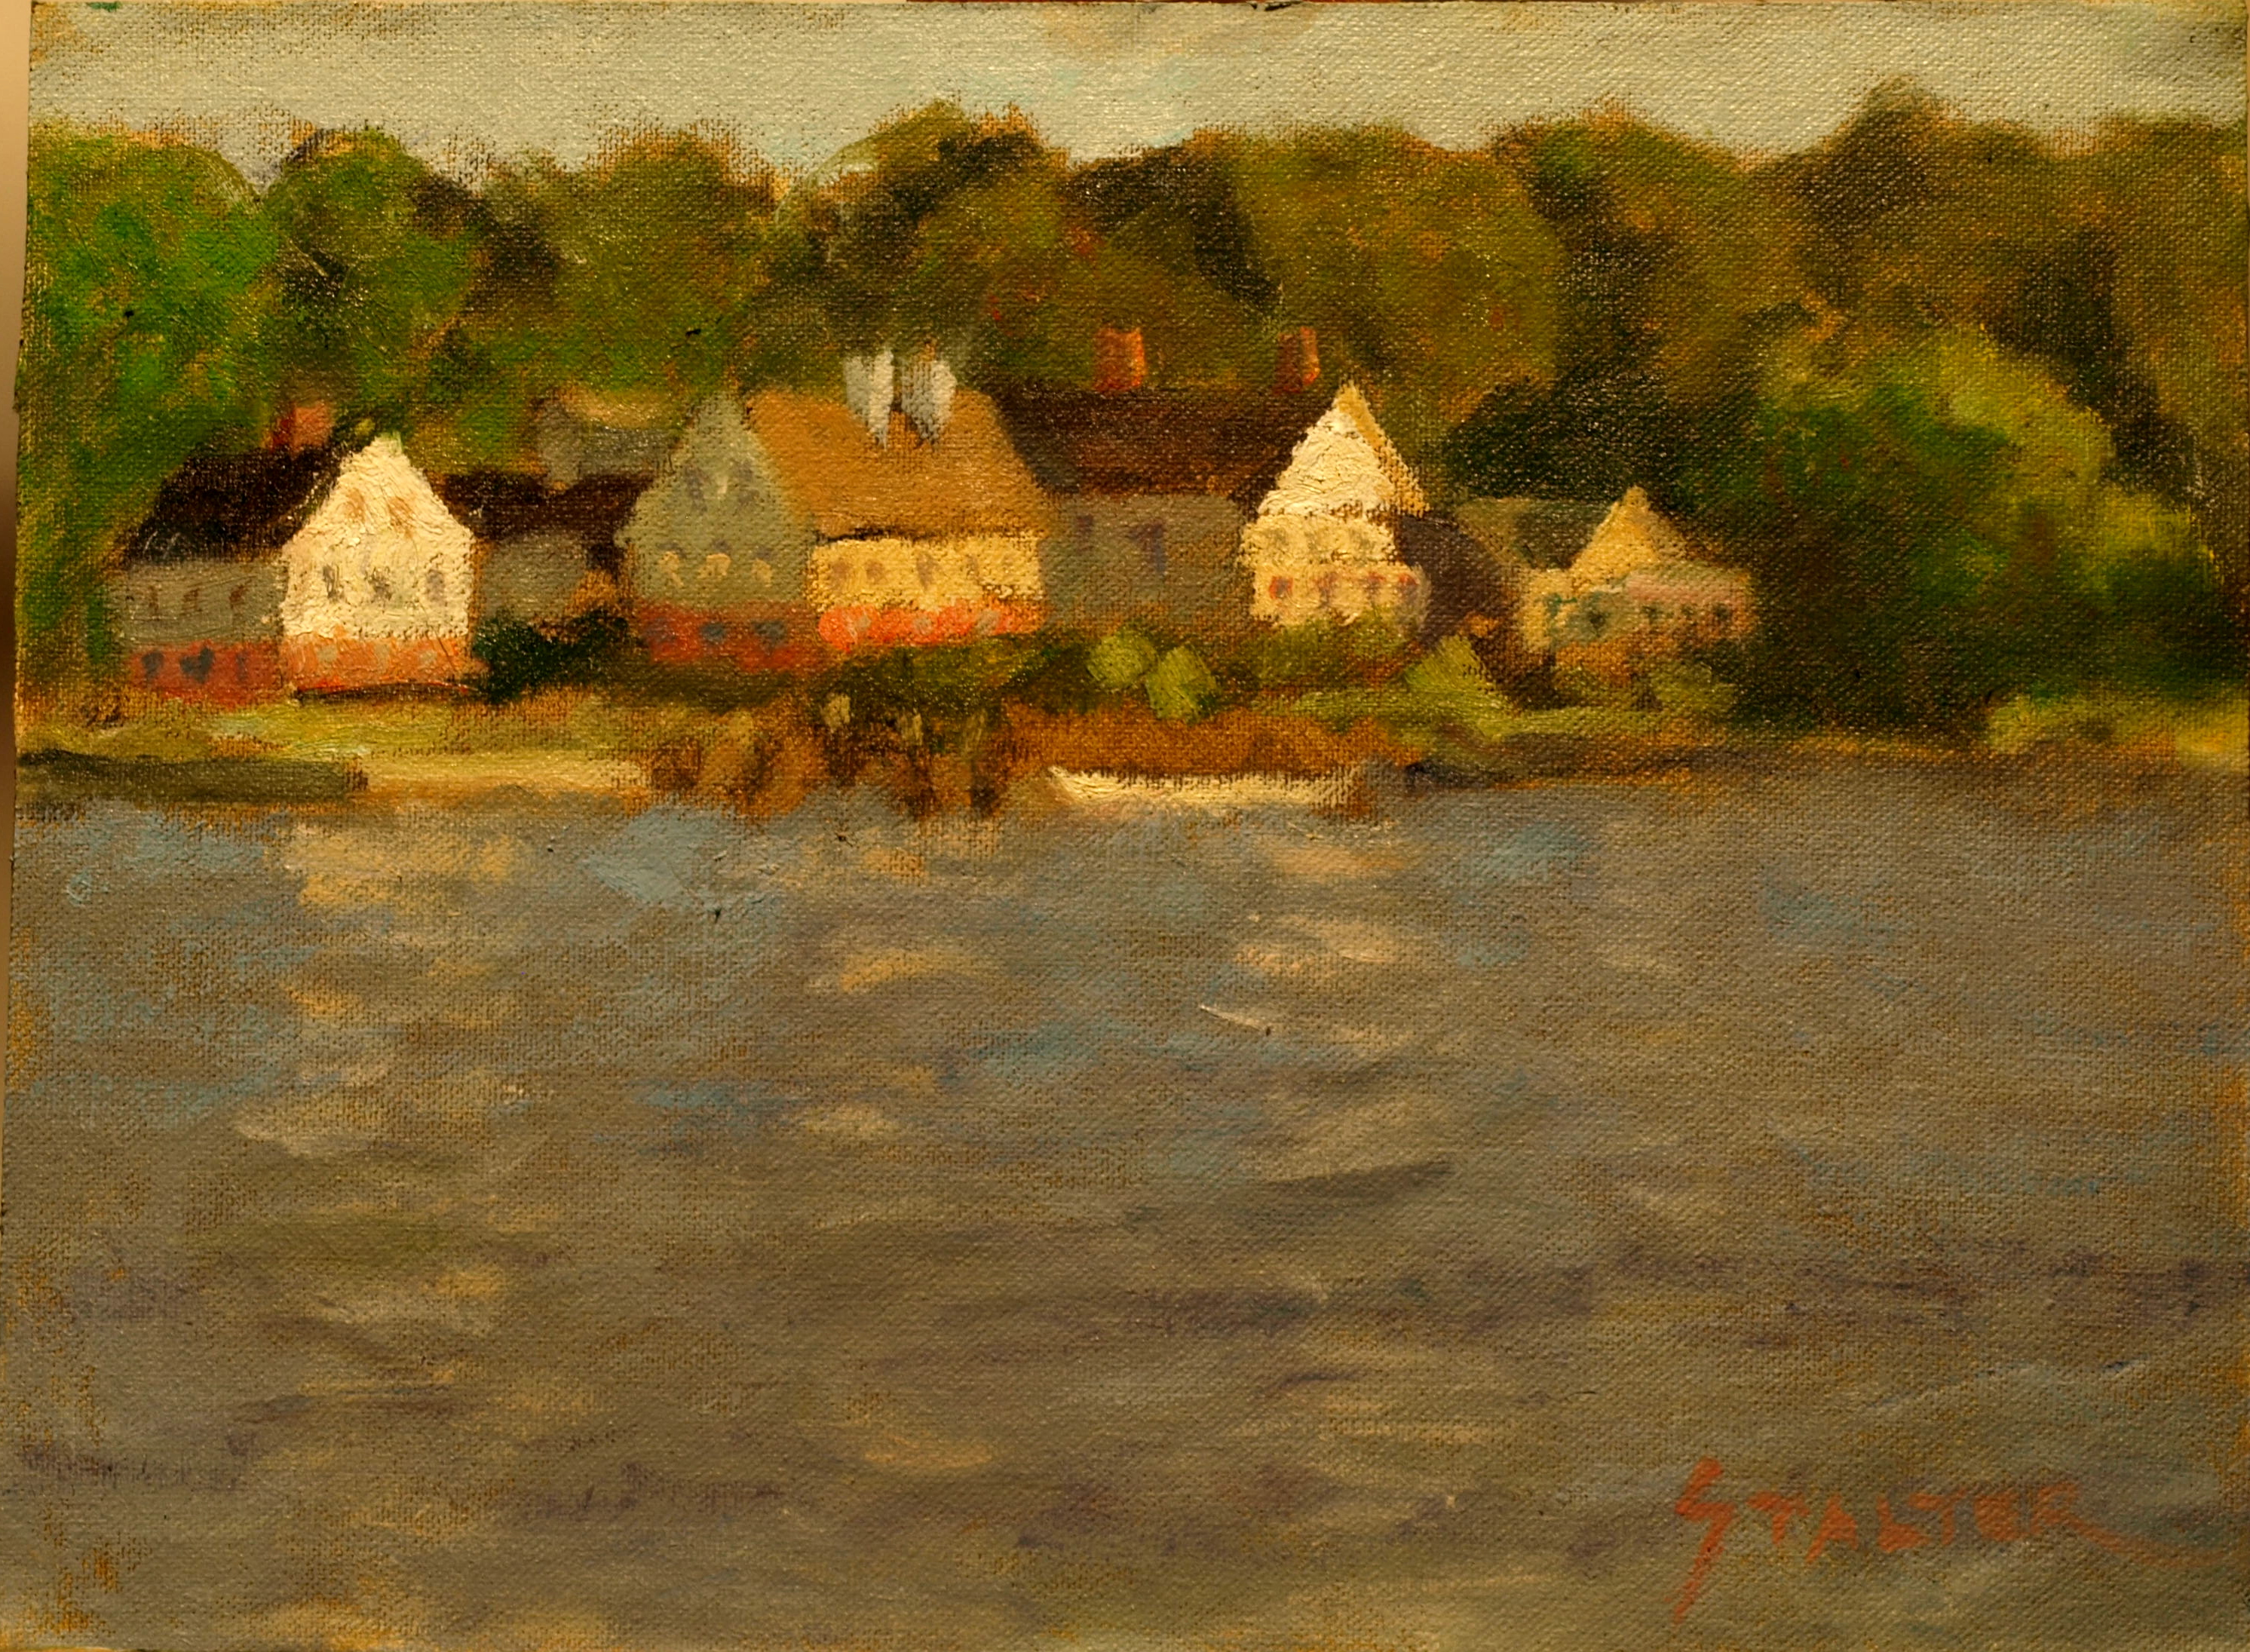 Mystic River Morning, Oil on Canvas on Panel, 9 x 12 Inches, by Richard Stalter, $220